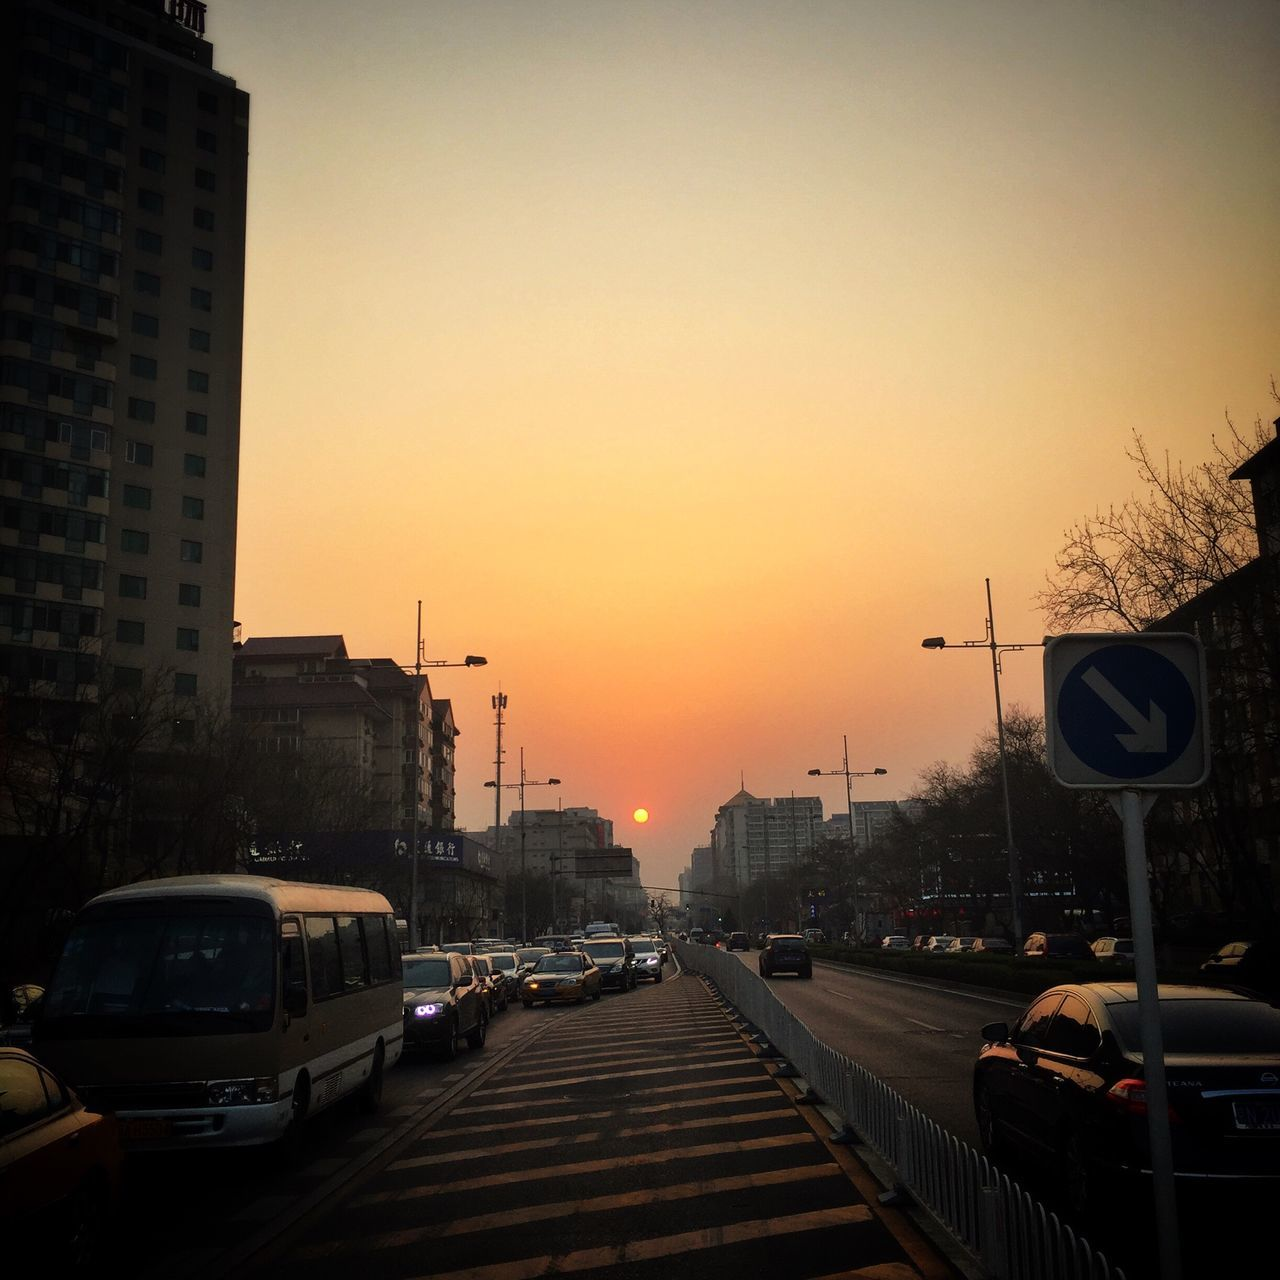 Beijing 二环路 IPhoneography Sunset Sunset #sun #clouds #skylovers #sky #nature #beautifulinnature #naturalbeauty #photography #landscape Spring